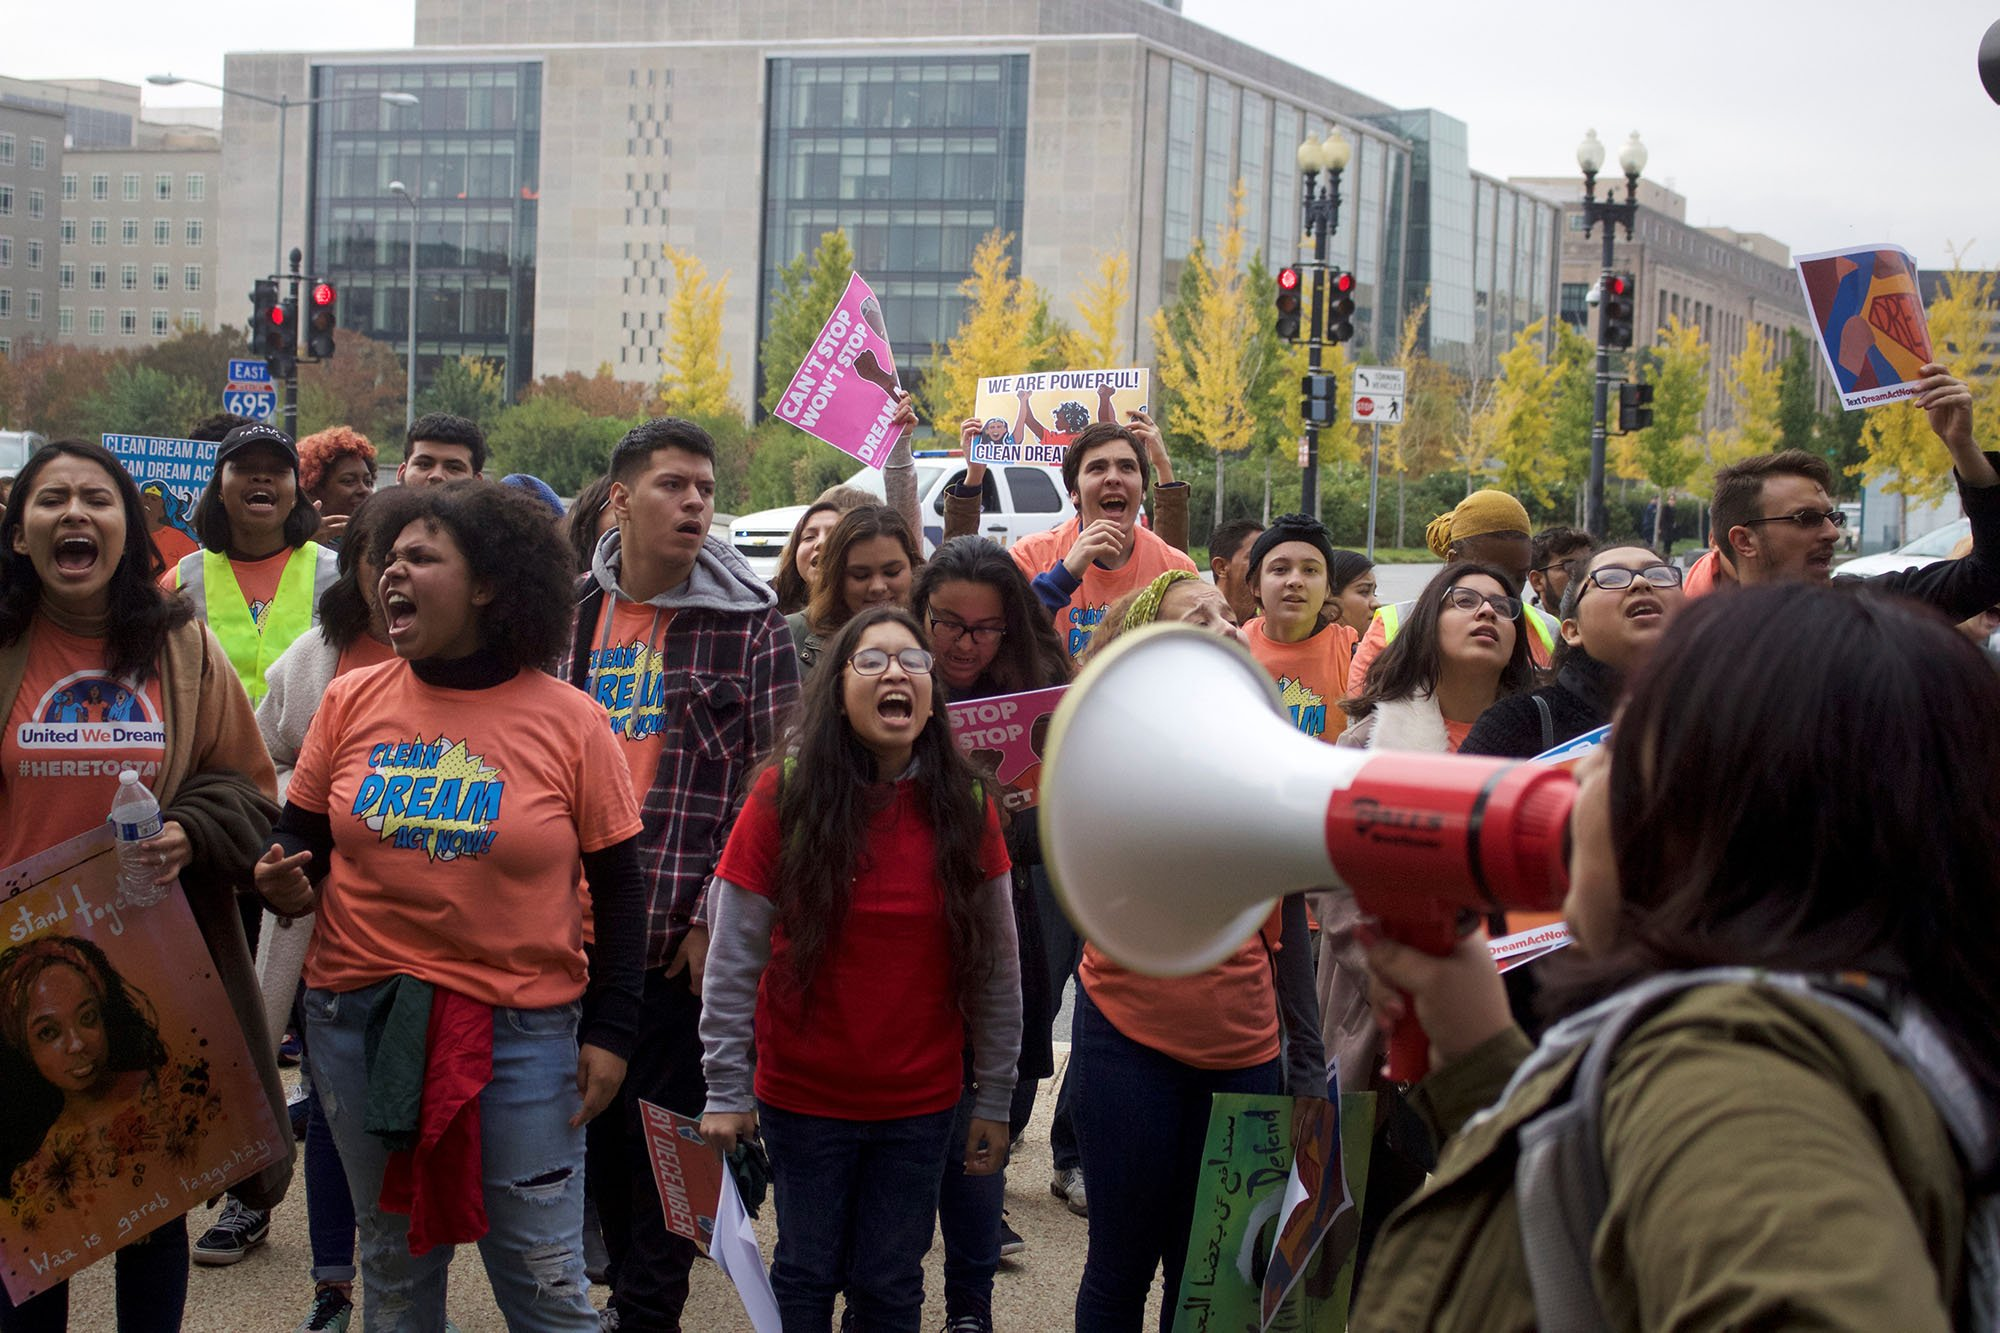 After rallying in the Hart Senate Office Bulding, protesters marched across the Capitol grounds and gathered on the West Front of the Capitol, where they continued their rally in support of DACA. (Photo by Andrew Nicla/Cronkite News)